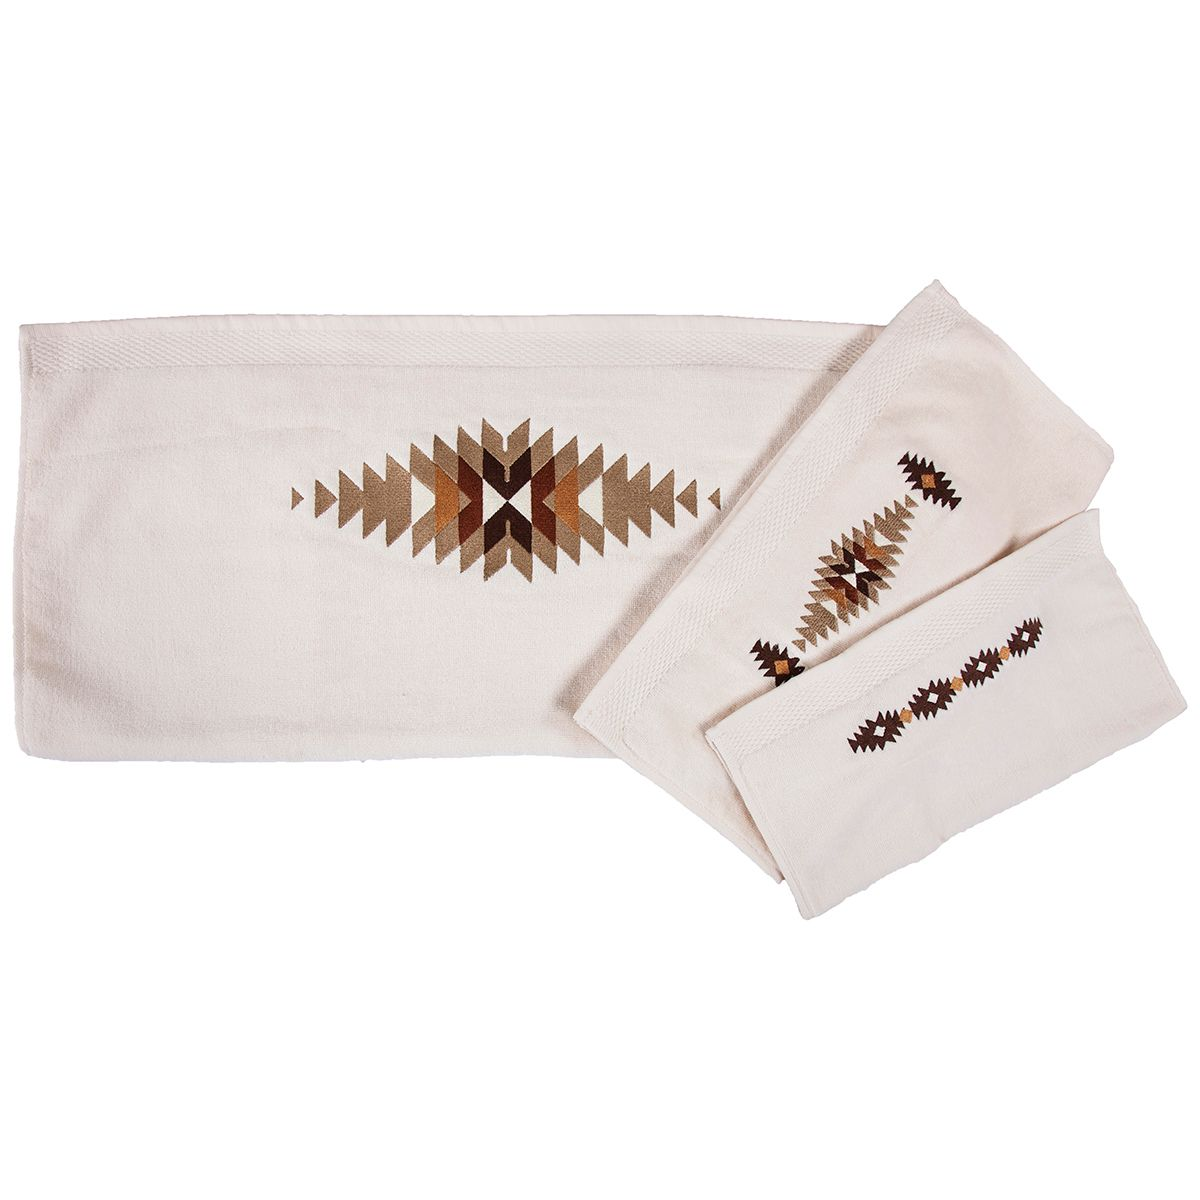 Washburn Embroidered Towel Set - Cream